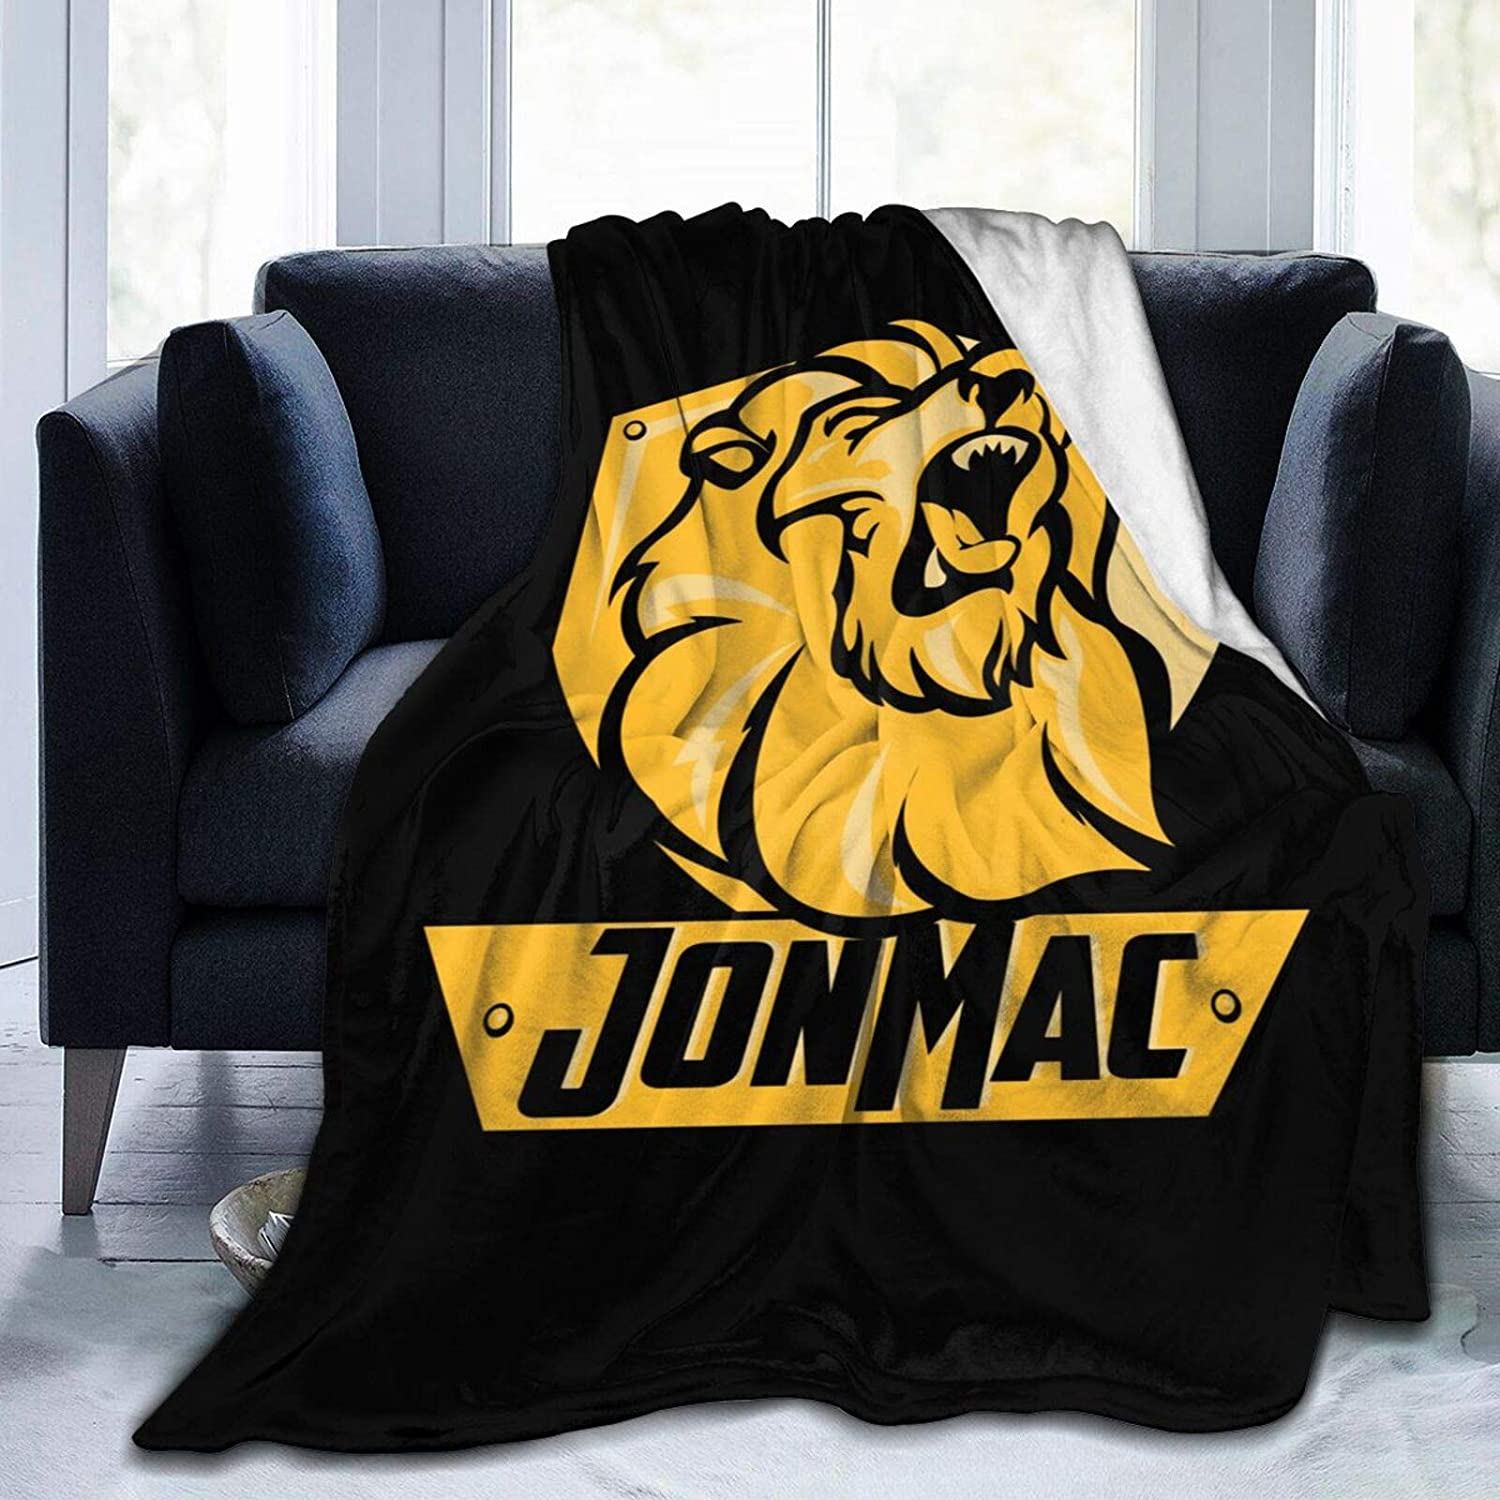 Jonmac Blanket Soft and Comfortable We OFFer at cheap prices Blanke Micro Wool Finally popular brand Super